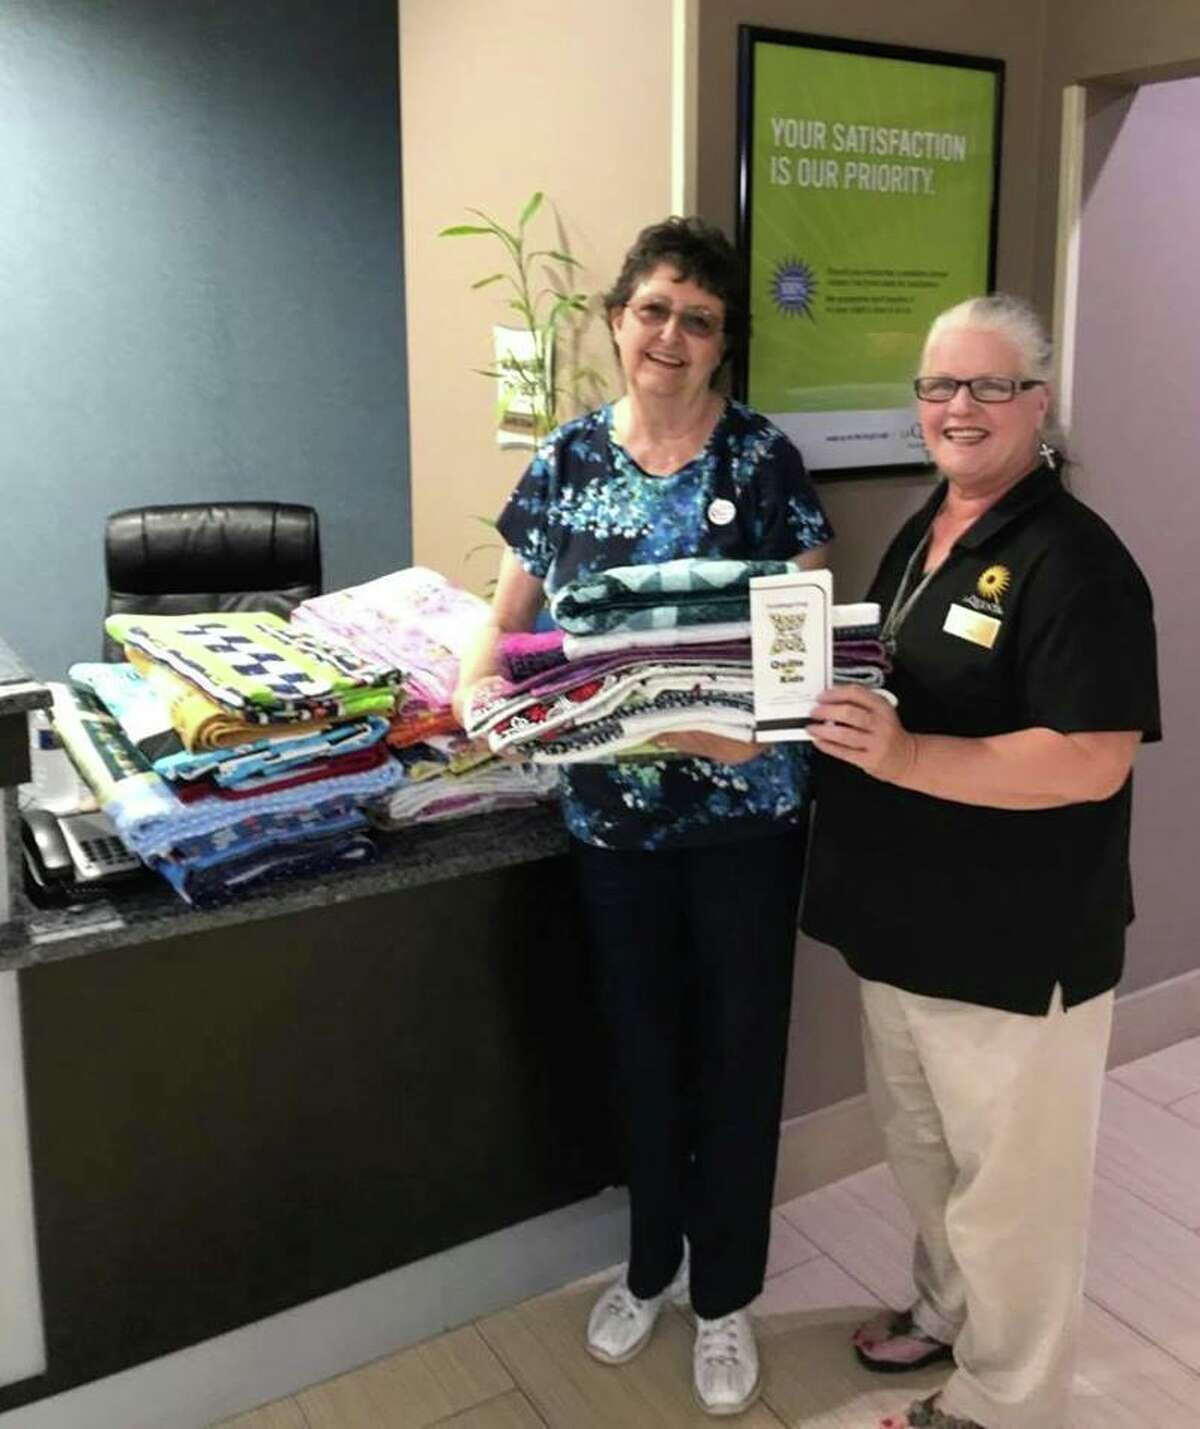 Linda Deeter (left) of the Coldspring chapter of Quilts for Kids bringsa stack of quilts to the LaQuinta Inn located in Cleveland to be given to children displaced from their homes after the floods of Hurricane Harvey.